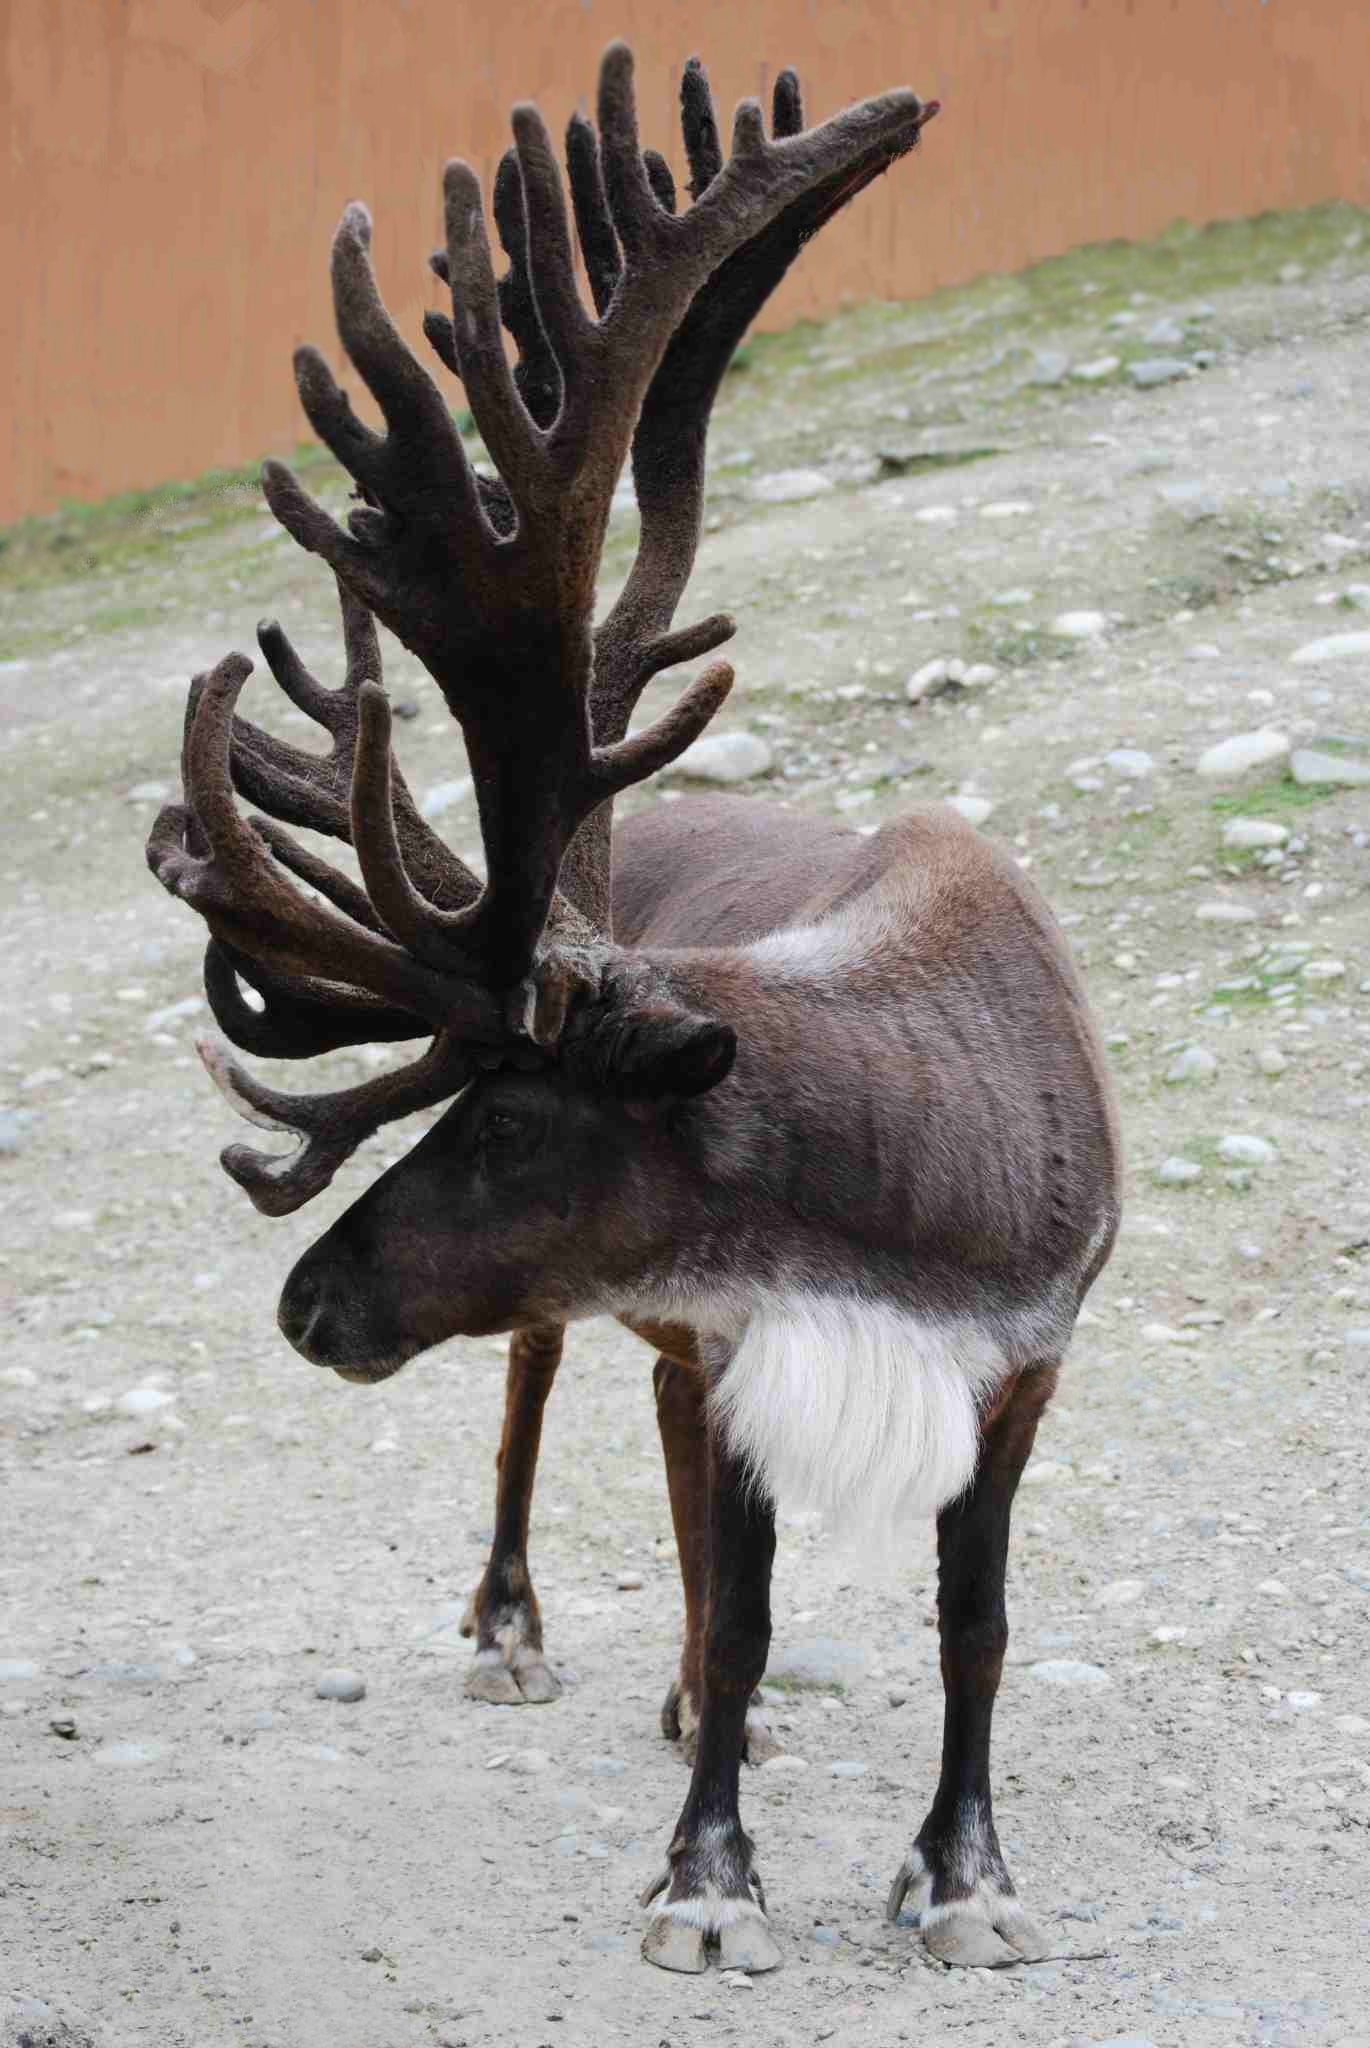 bull reindeer with impressive fuzzy antlers